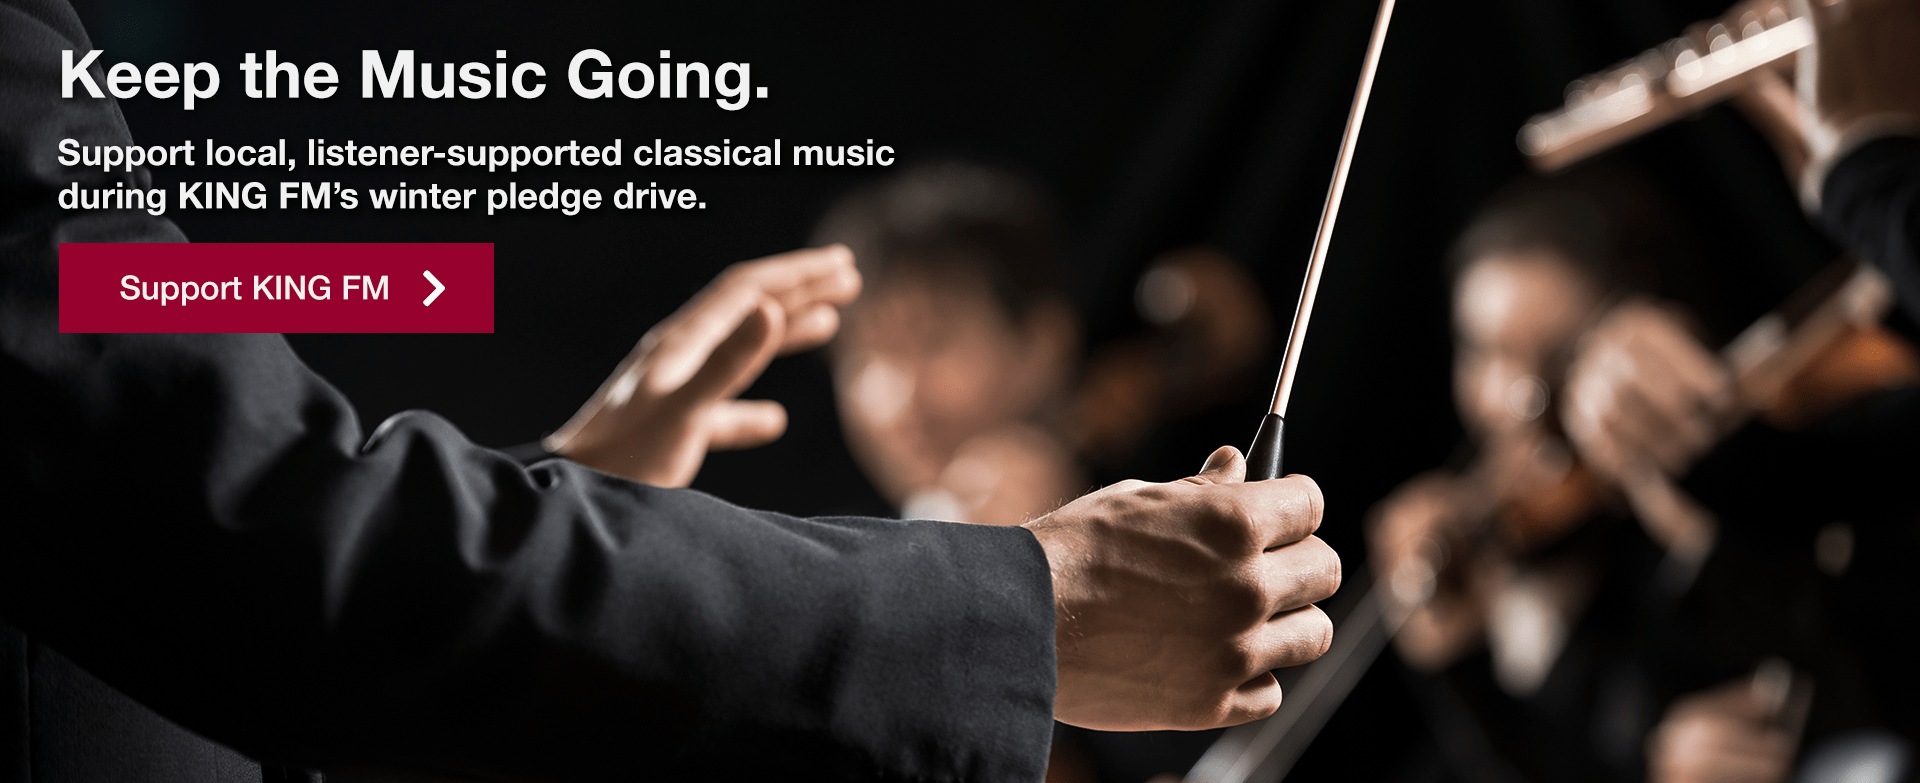 [image of orchestral conductor] Keep the Music Going. Support local, listener-supported classical music during KING FM's winter pledge drive.